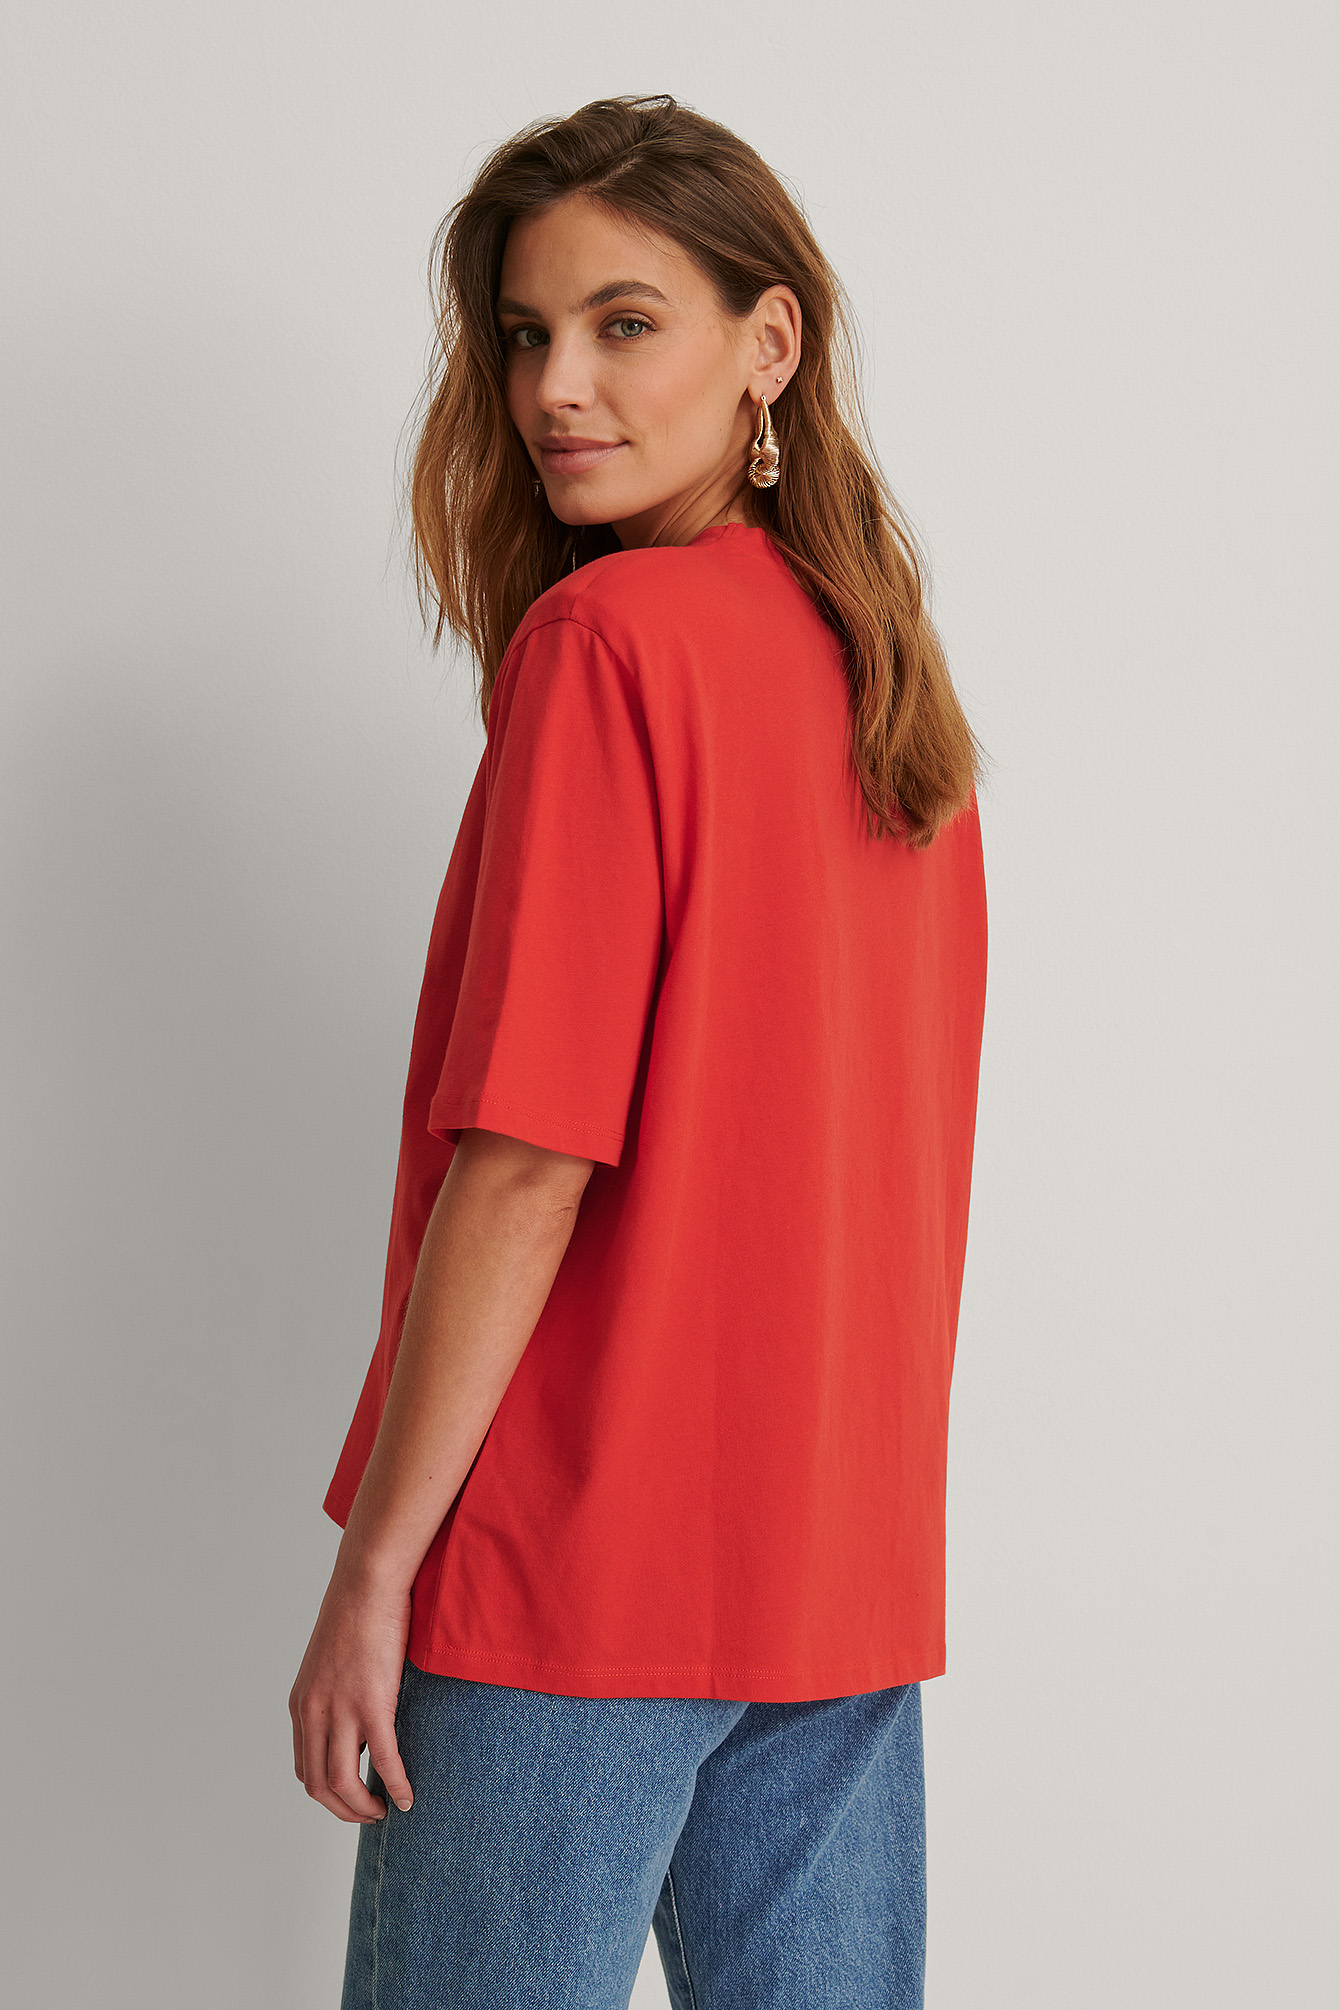 Bright Red Shoulder Pad Boxy Tee